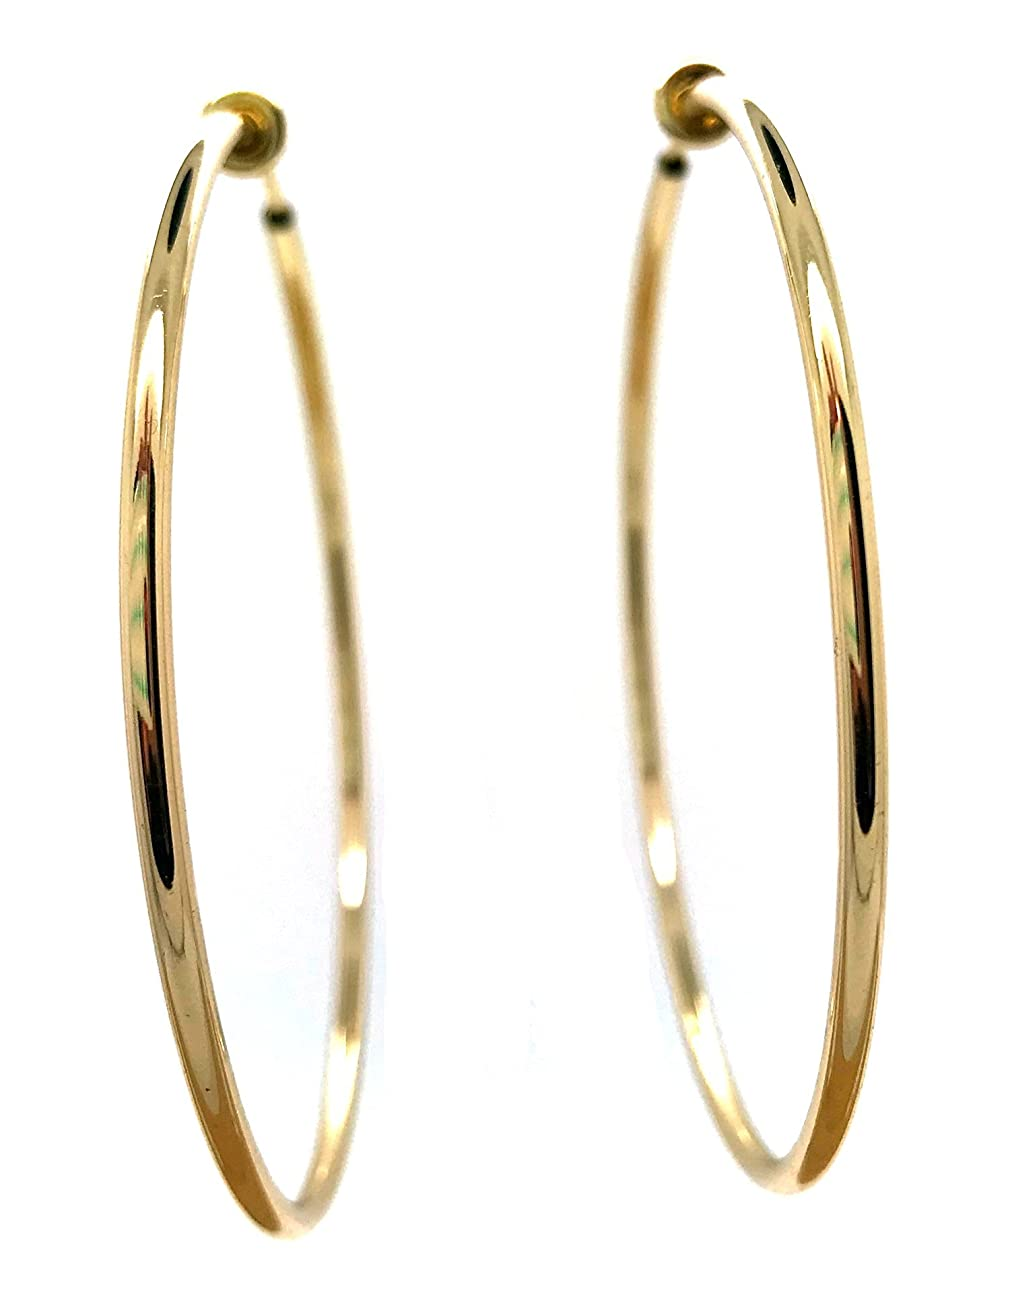 Gold-Tone Plated Brass Spring Hoops Earrings Clip On-Small, Medium & Large Hoops for Women, Unpierced